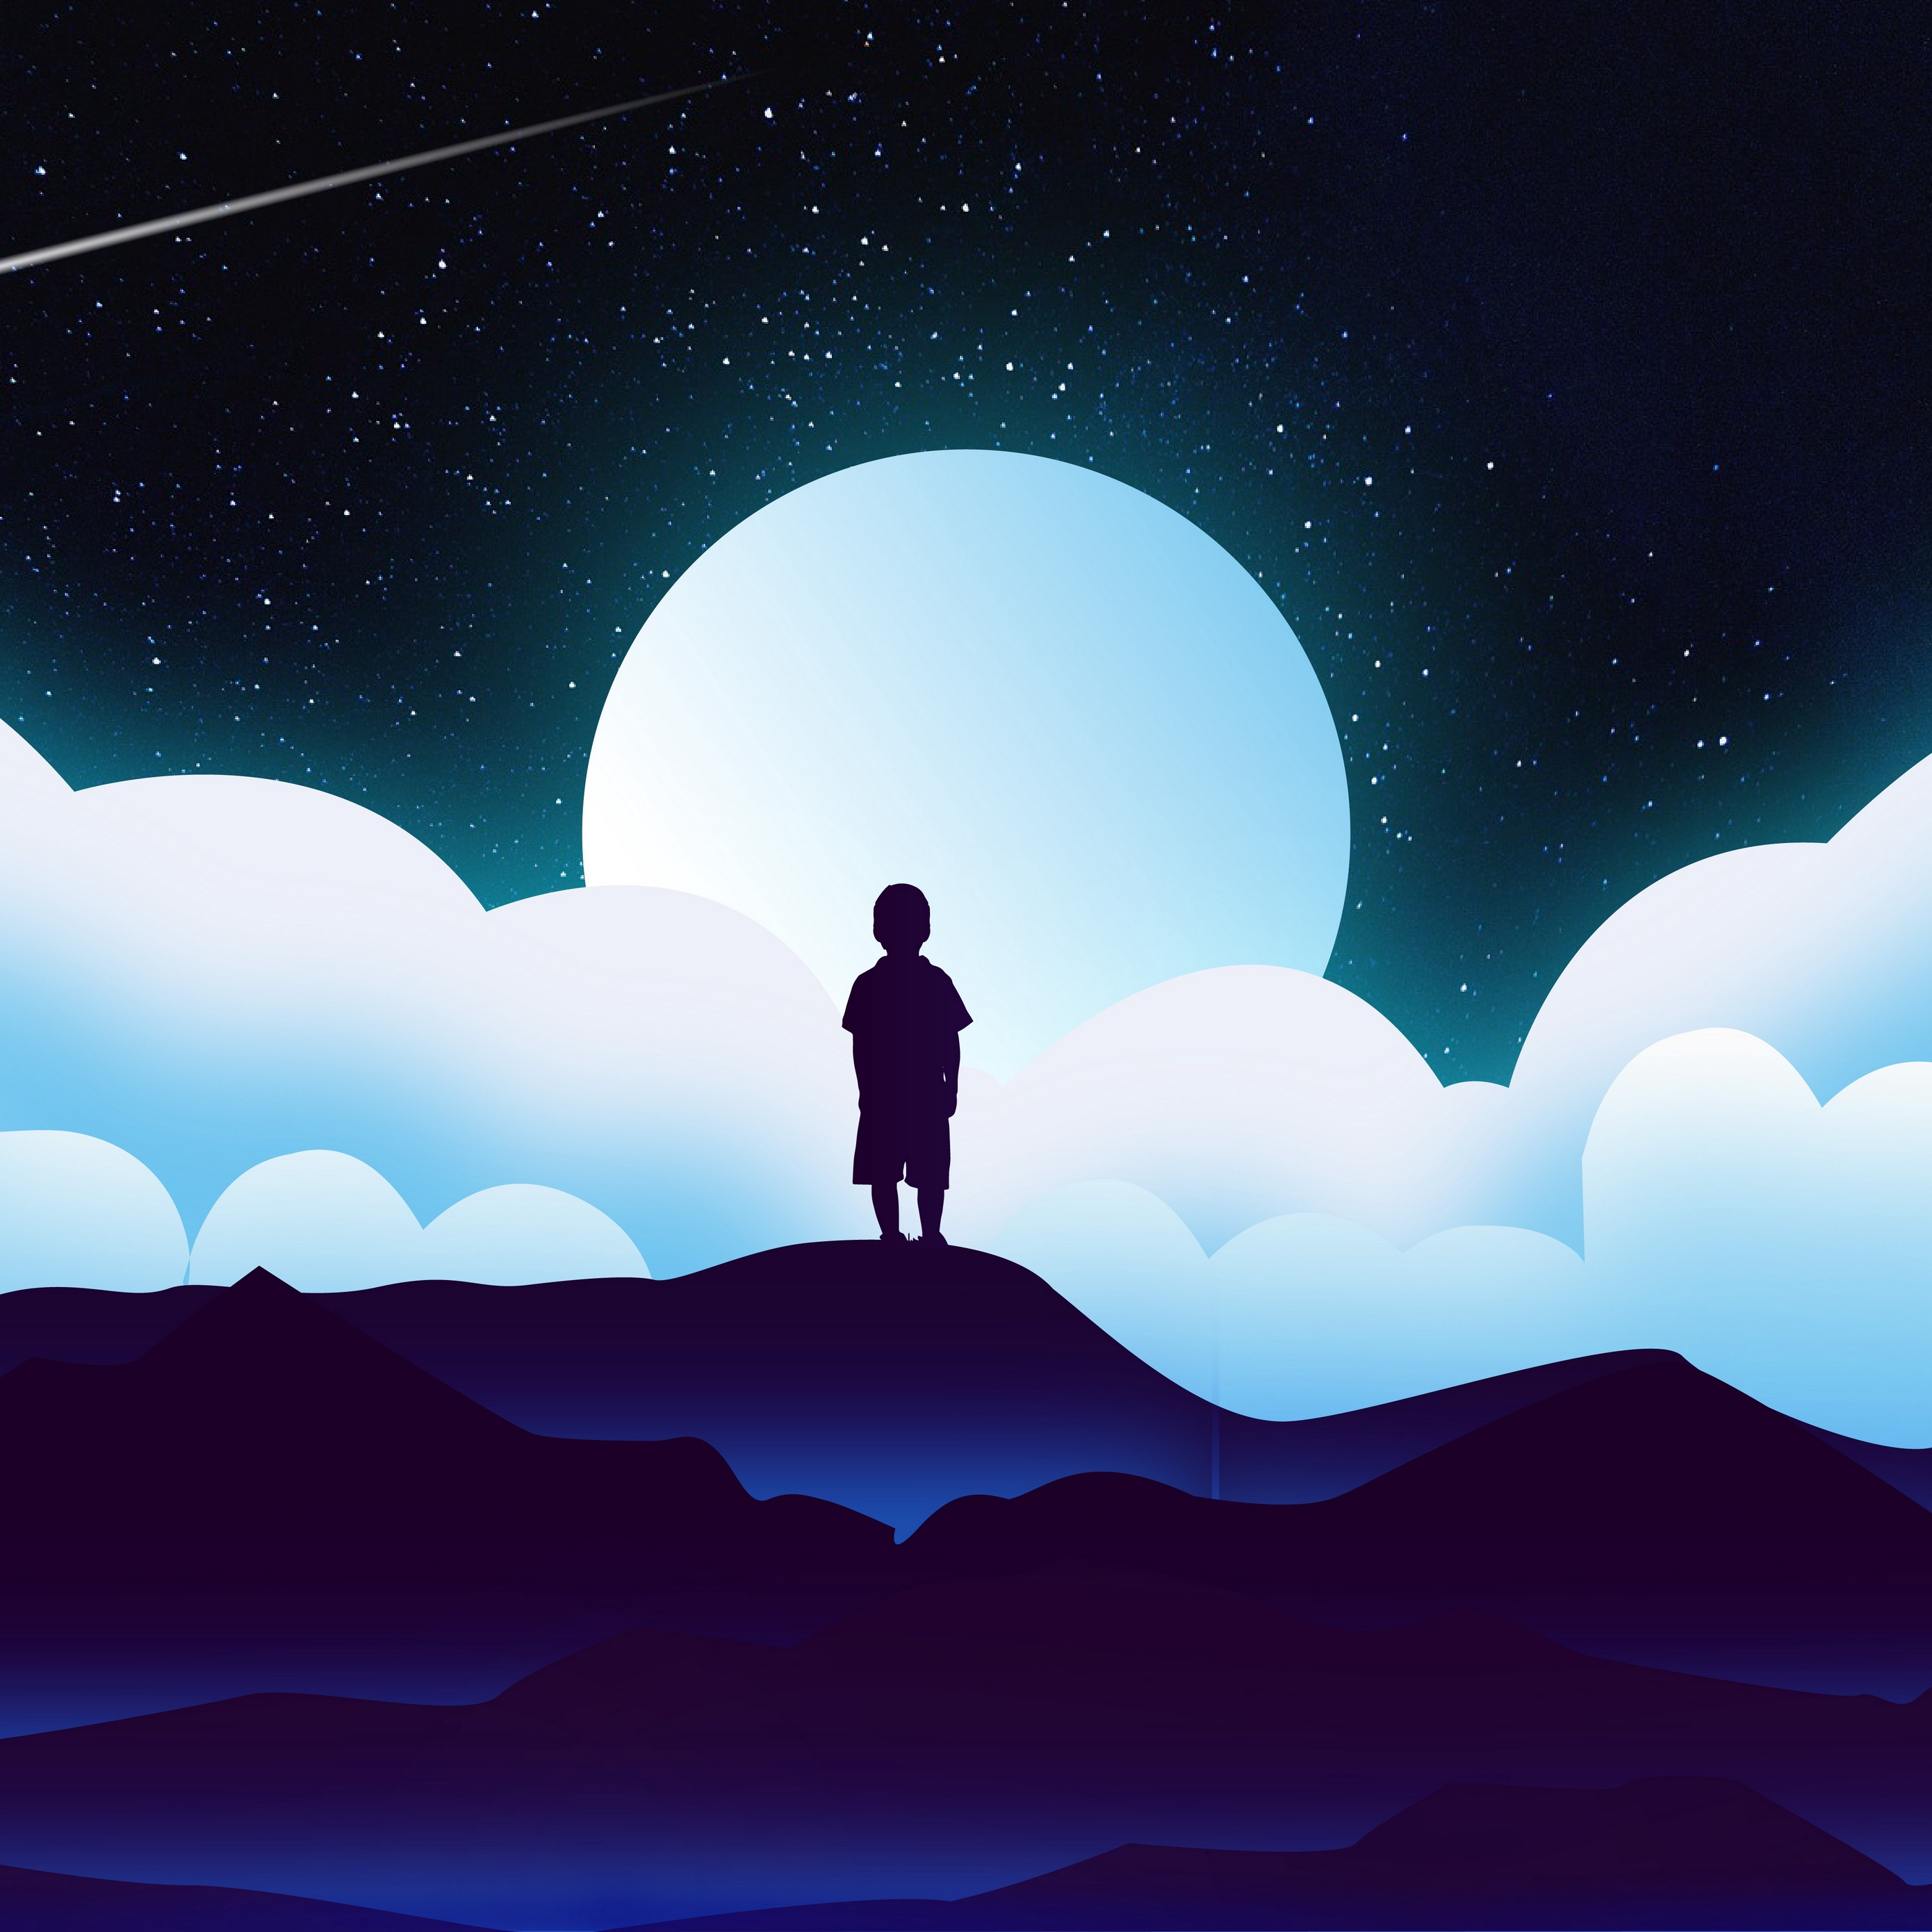 Download wallpaper 2780x2780 child silhouette space clouds 2780x2780